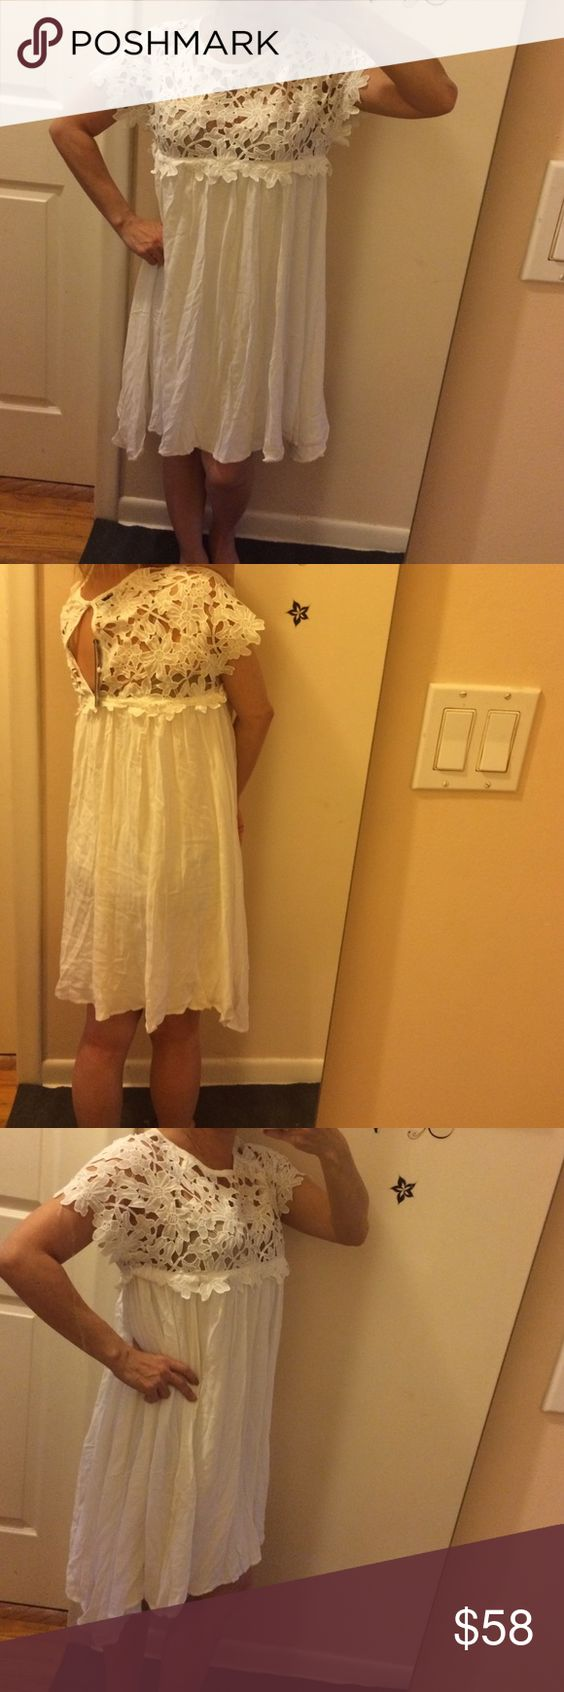 """My Story BNWT white dress floral top Personal favorite. If I weren't locating Abd it wasn't a medical emergency, this I would definitely keep. Bust: 17"""". Trapeze dress. Made of rayon and embroidered flowers on top, polyester. Polyester lining. Neck opening: 11.5"""" with button behind neck. Sleeves: 9.5"""" arm opening 8.5"""". Mid neck to bottom of flowers: 6.5"""" total length of dress: 34"""". Extra button attached to tag. I'm normally an xs and it's a little big, but the style of the dress, I'd still…"""